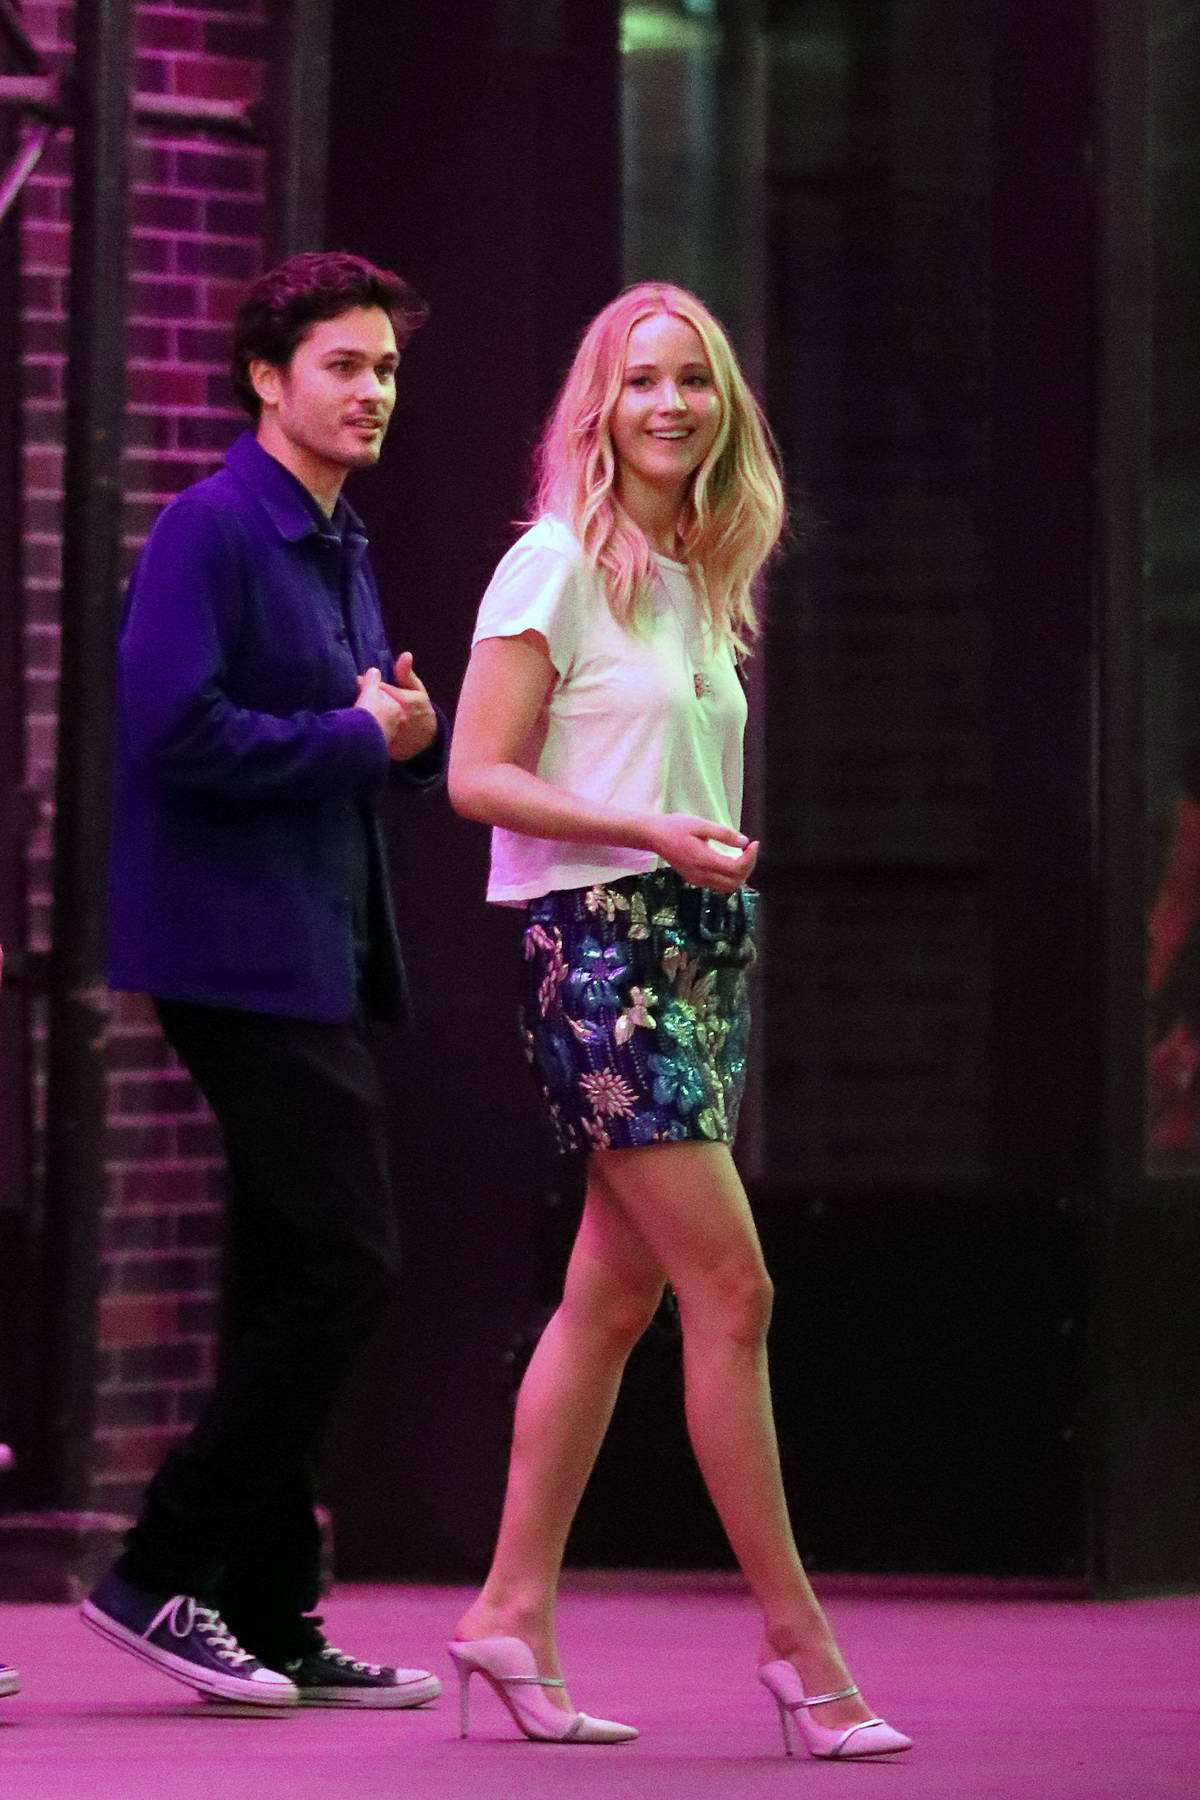 Jennifer Lawrence looks pretty in white top and floral mini skirt during a date night with Cooke Maroney in New York City